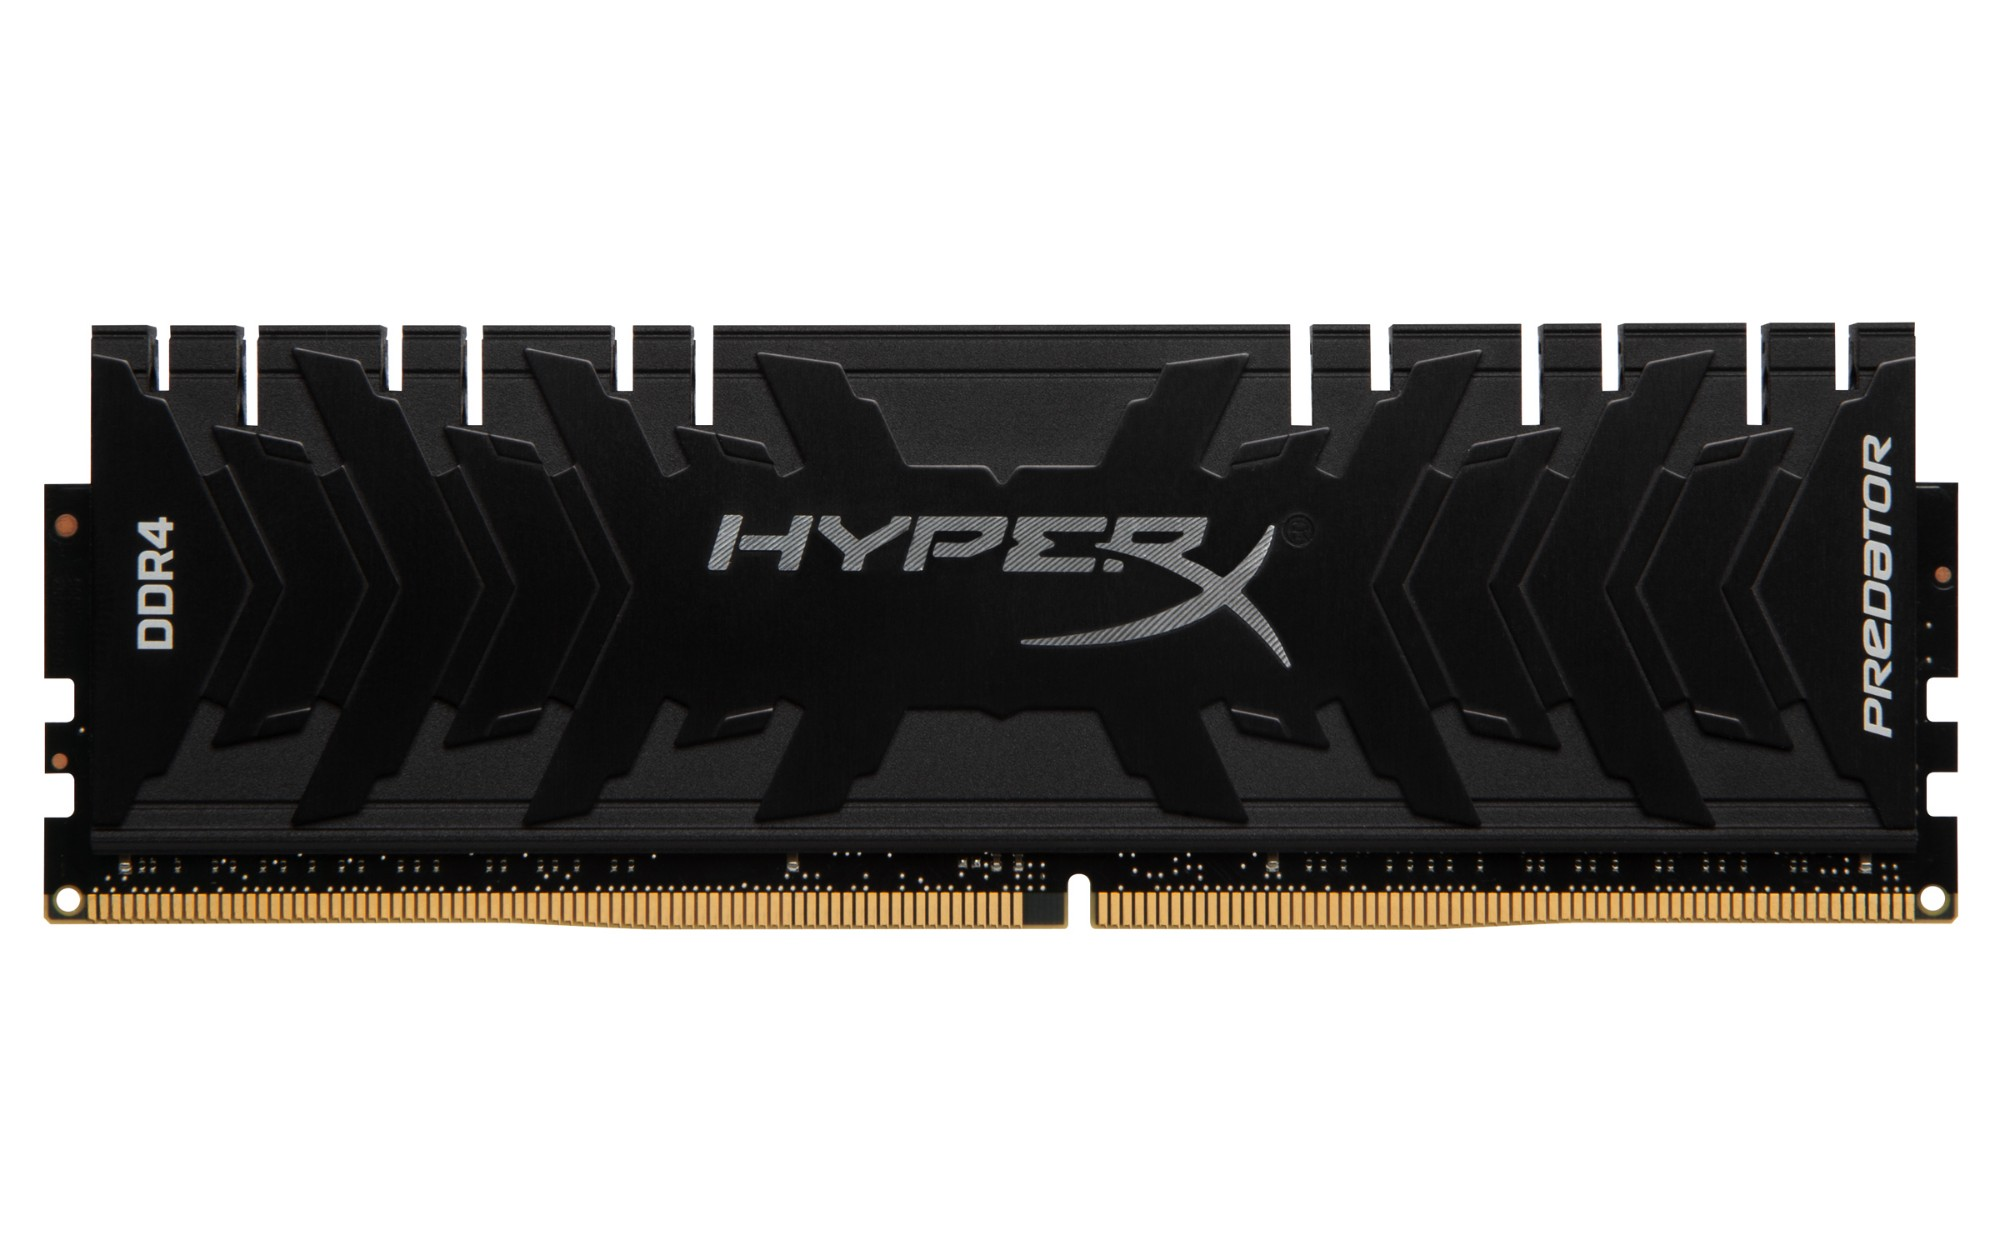 32GB 3200MHz DDR4 CL16 DIMM (Kit of 4) XMP HyperX Predator